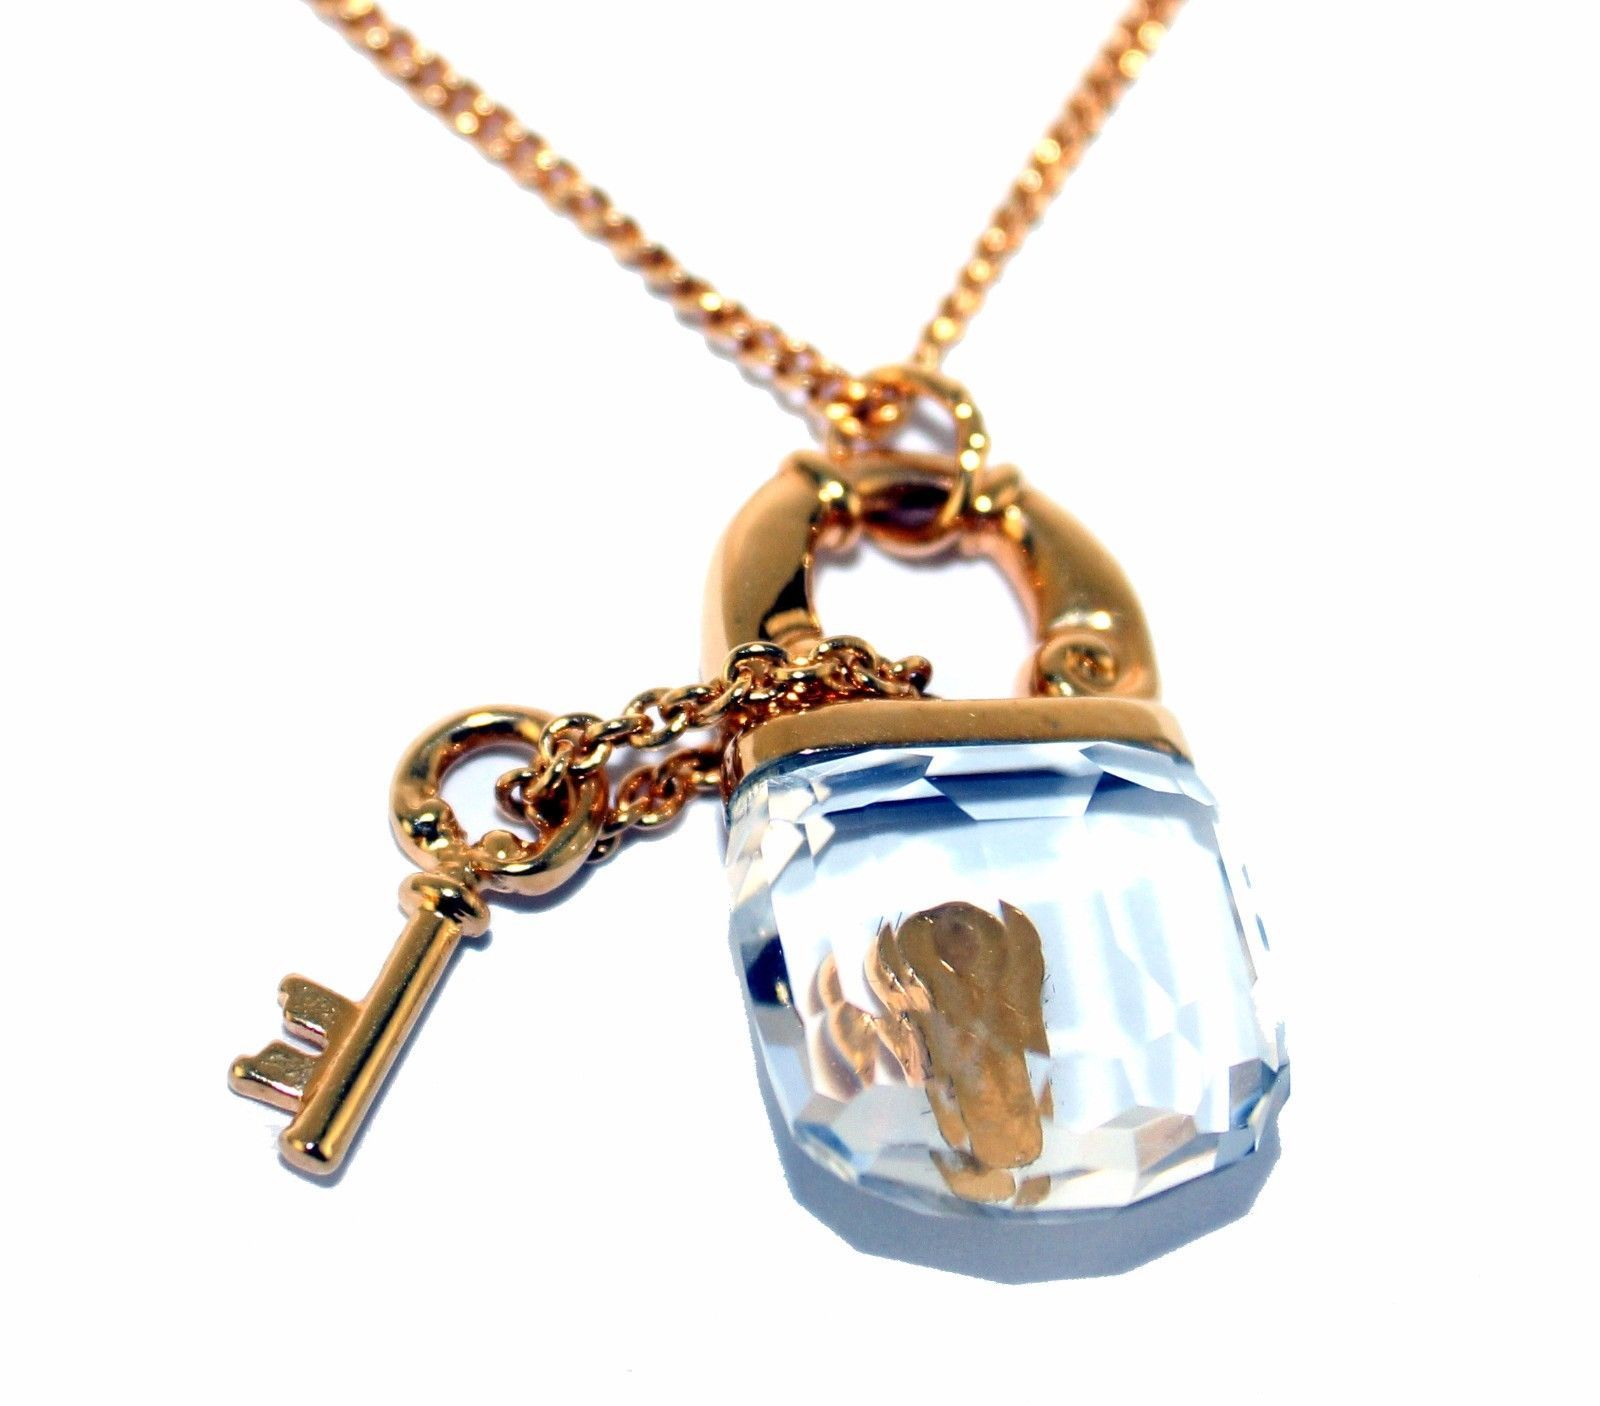 Auth Swarovski Gold Tone & Crystal Lock Pendant Chain Necklace W/ Brooch Unused image 11